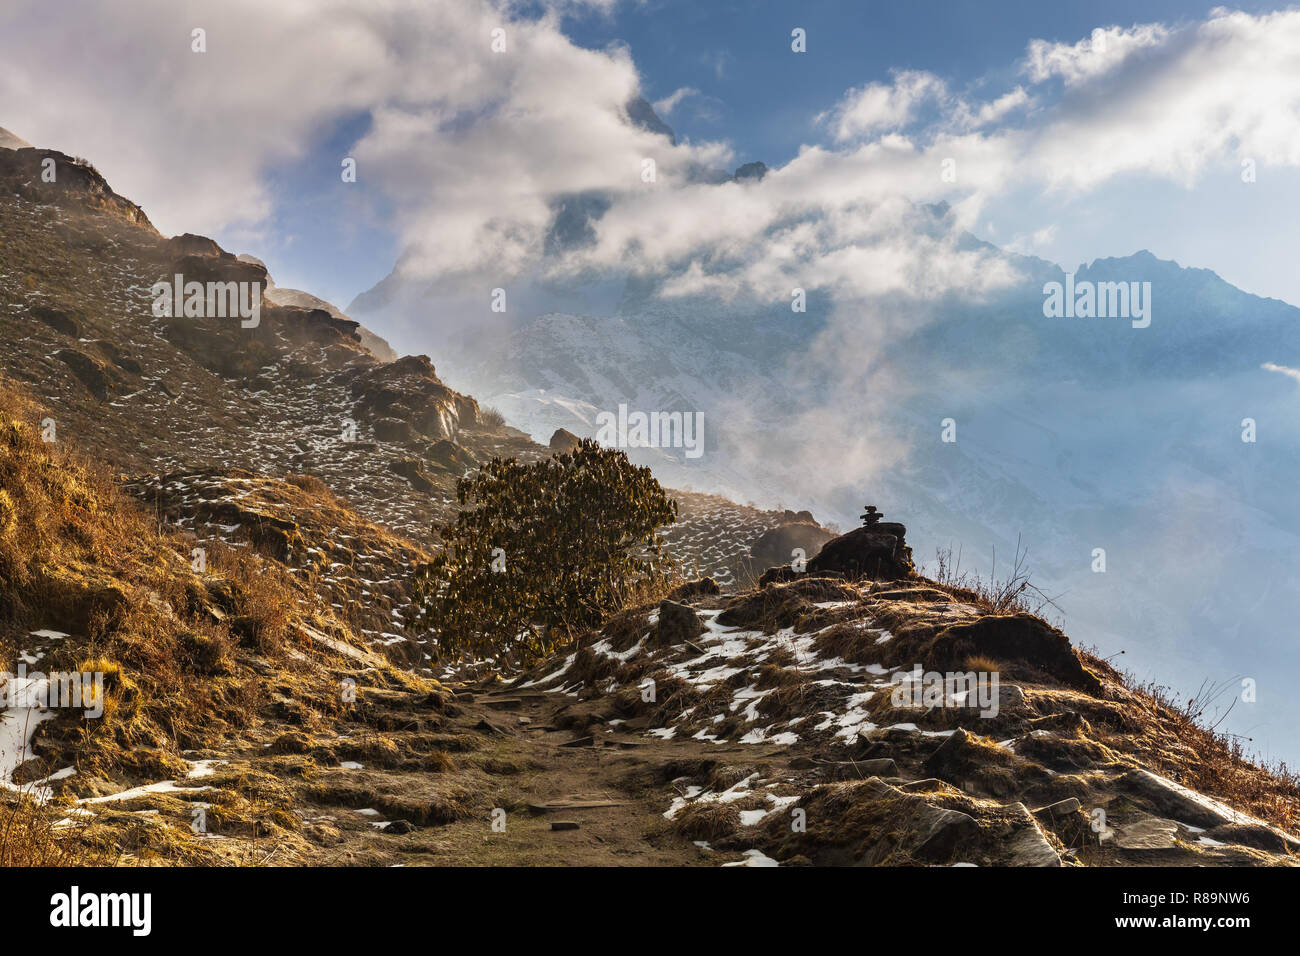 Hiking path on side of mountain in Annapurna Himal, Nepal, Himalayas, Asia - Stock Image